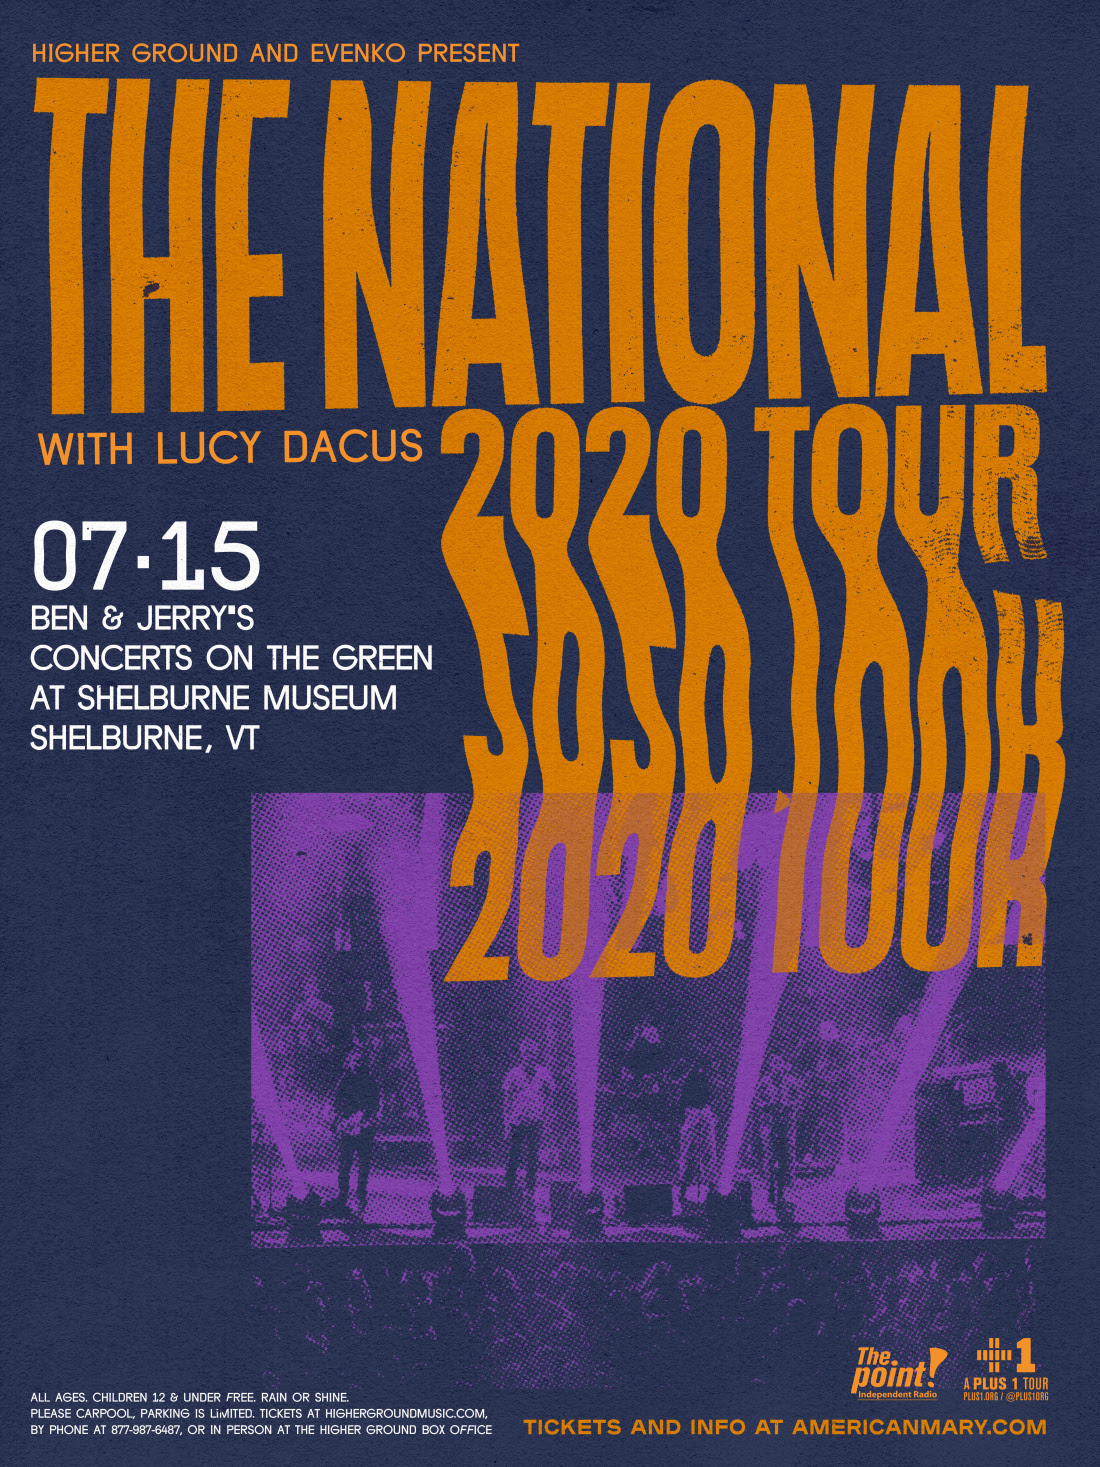 The National on July 15th at Shelburne Museum